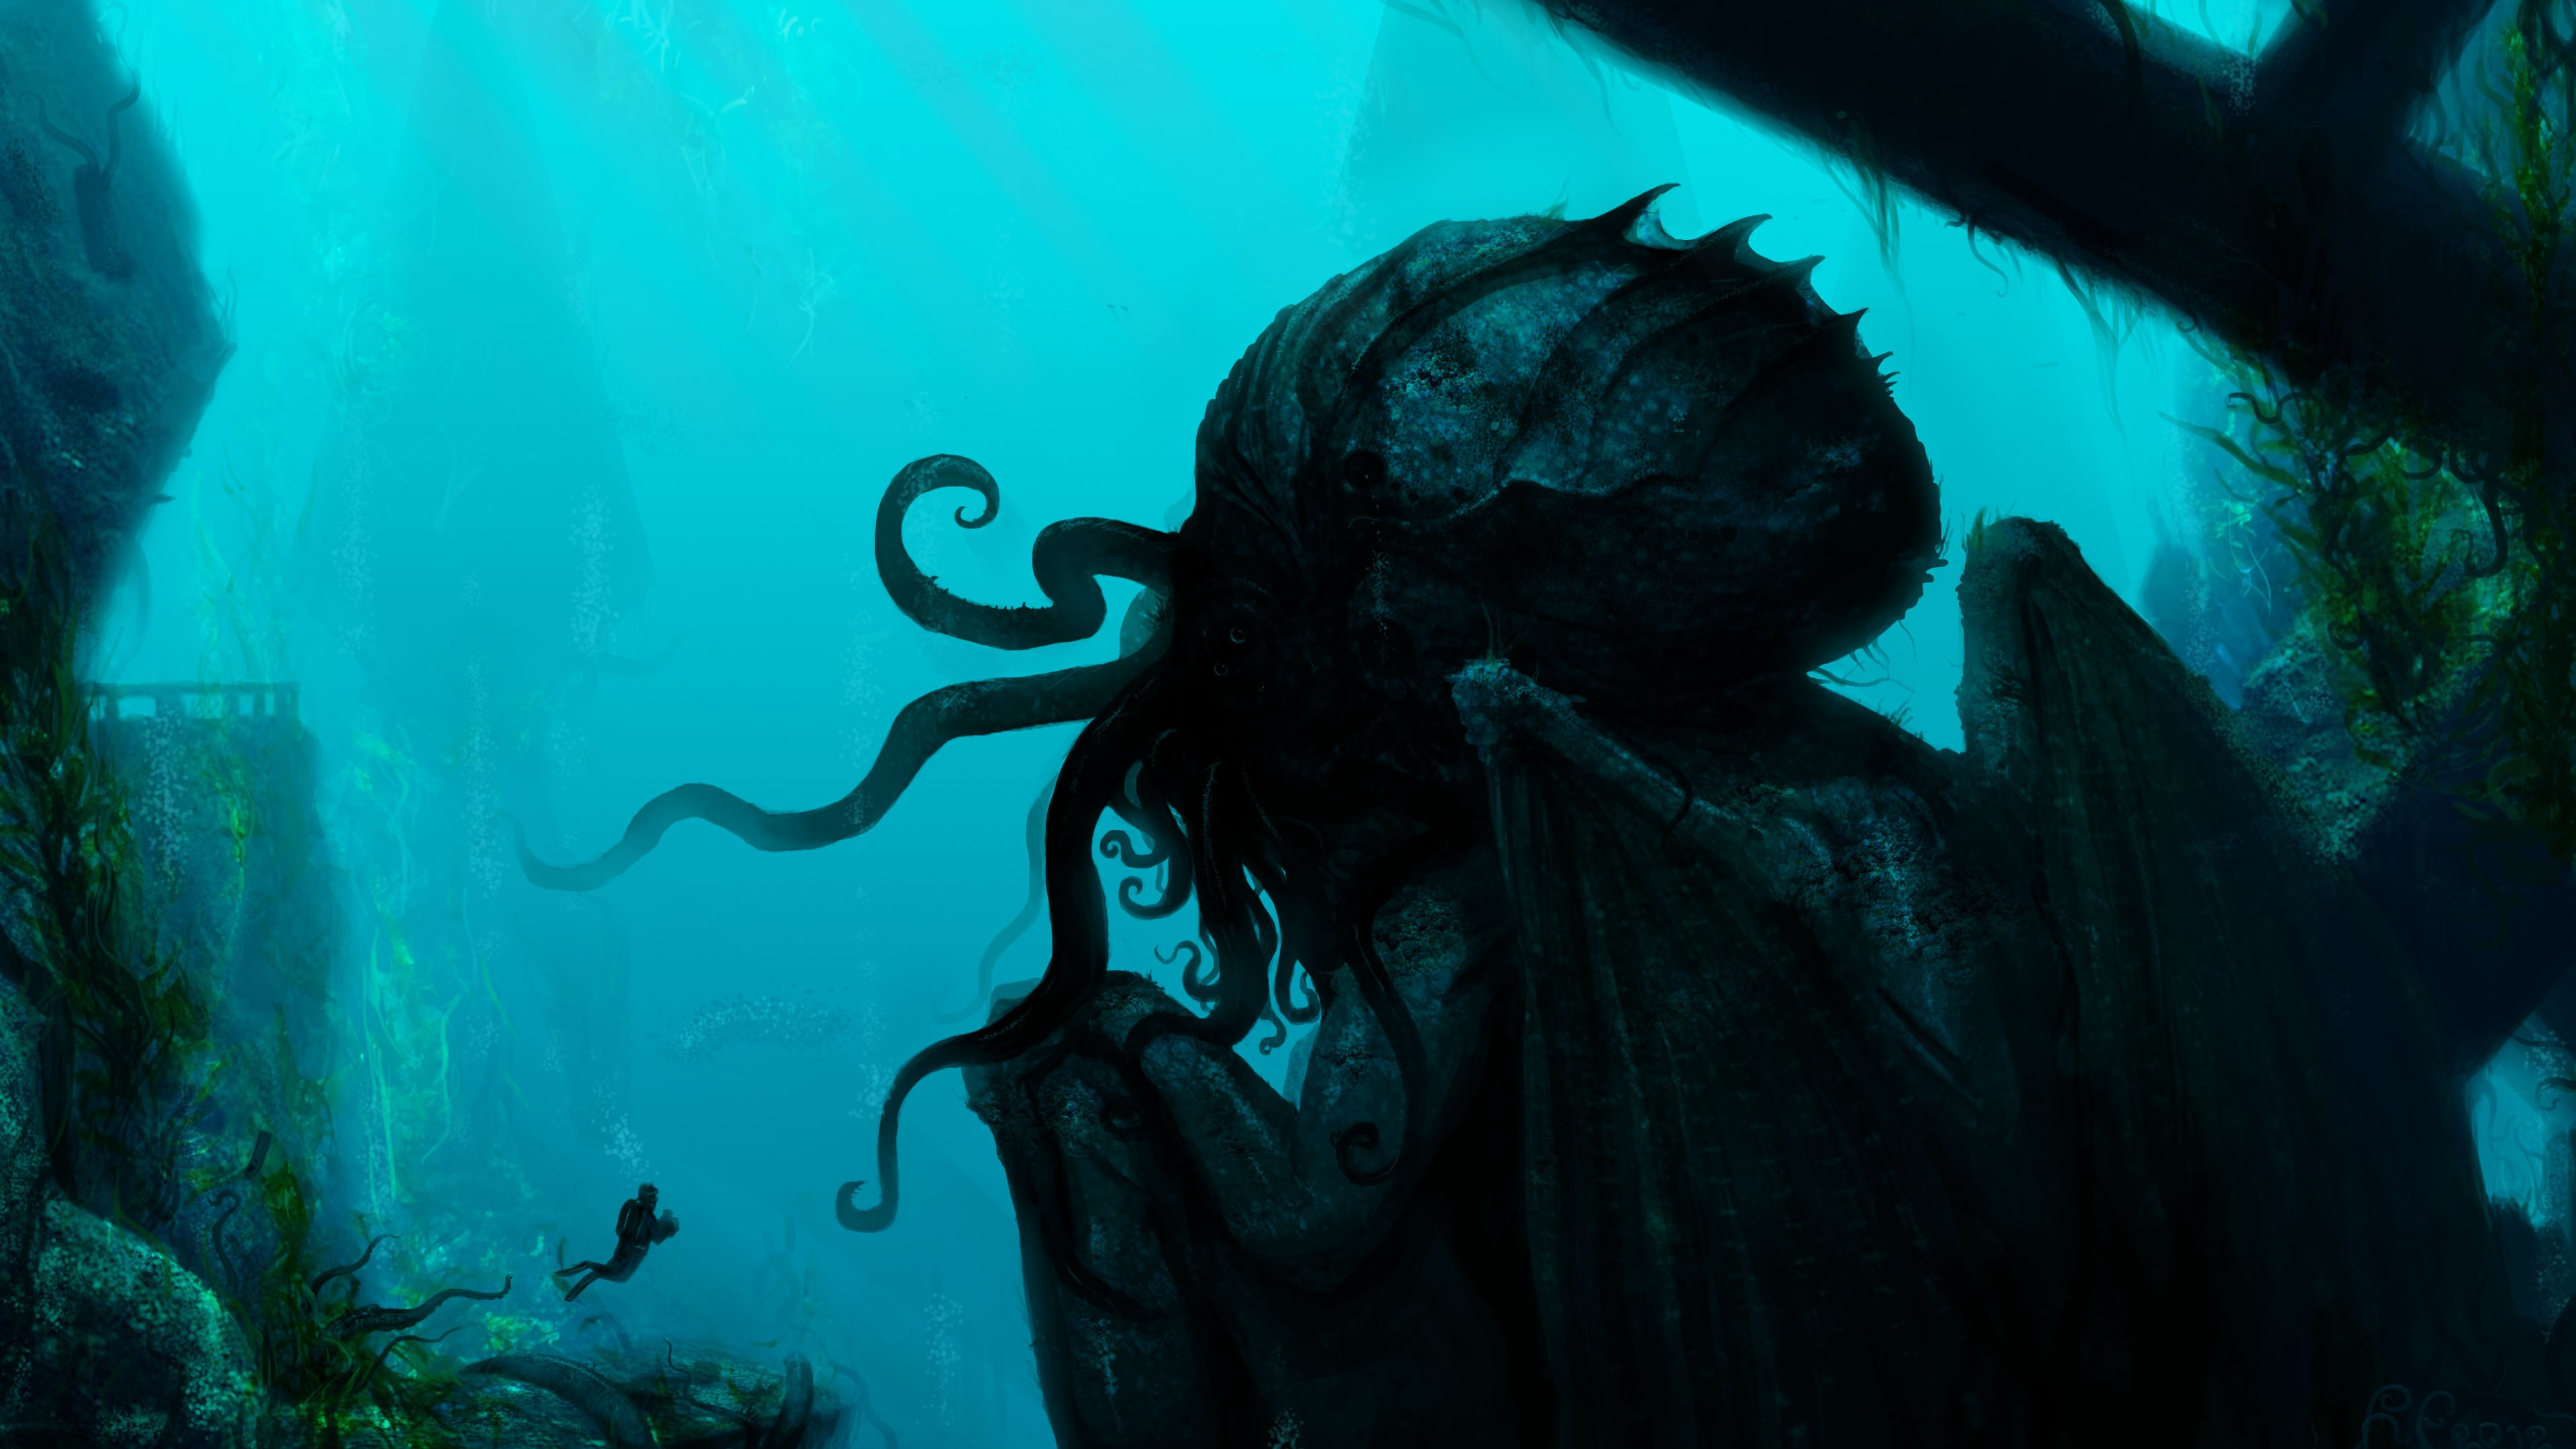 3d Fantasy Wallpapers 1920x1080 Cthulhu Fantasy Art Artwork Underwater Wallpaper